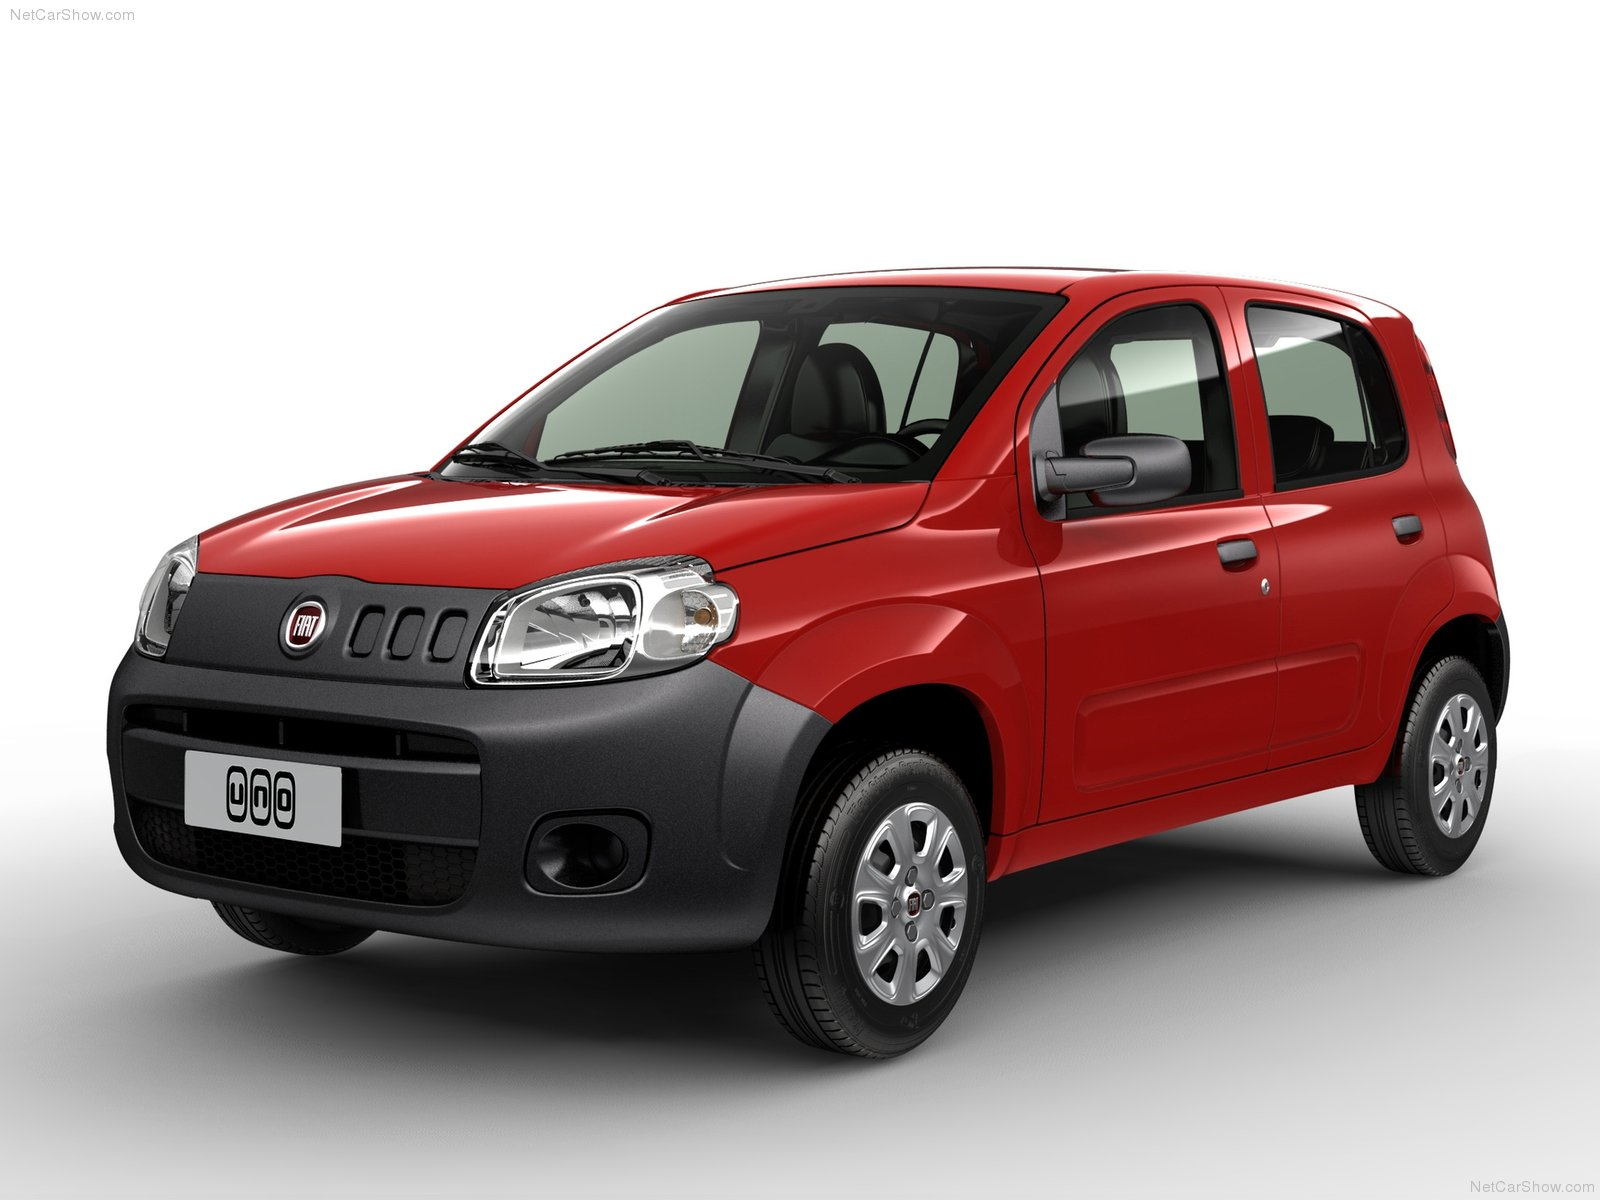 Here we provide new Fiat Uno